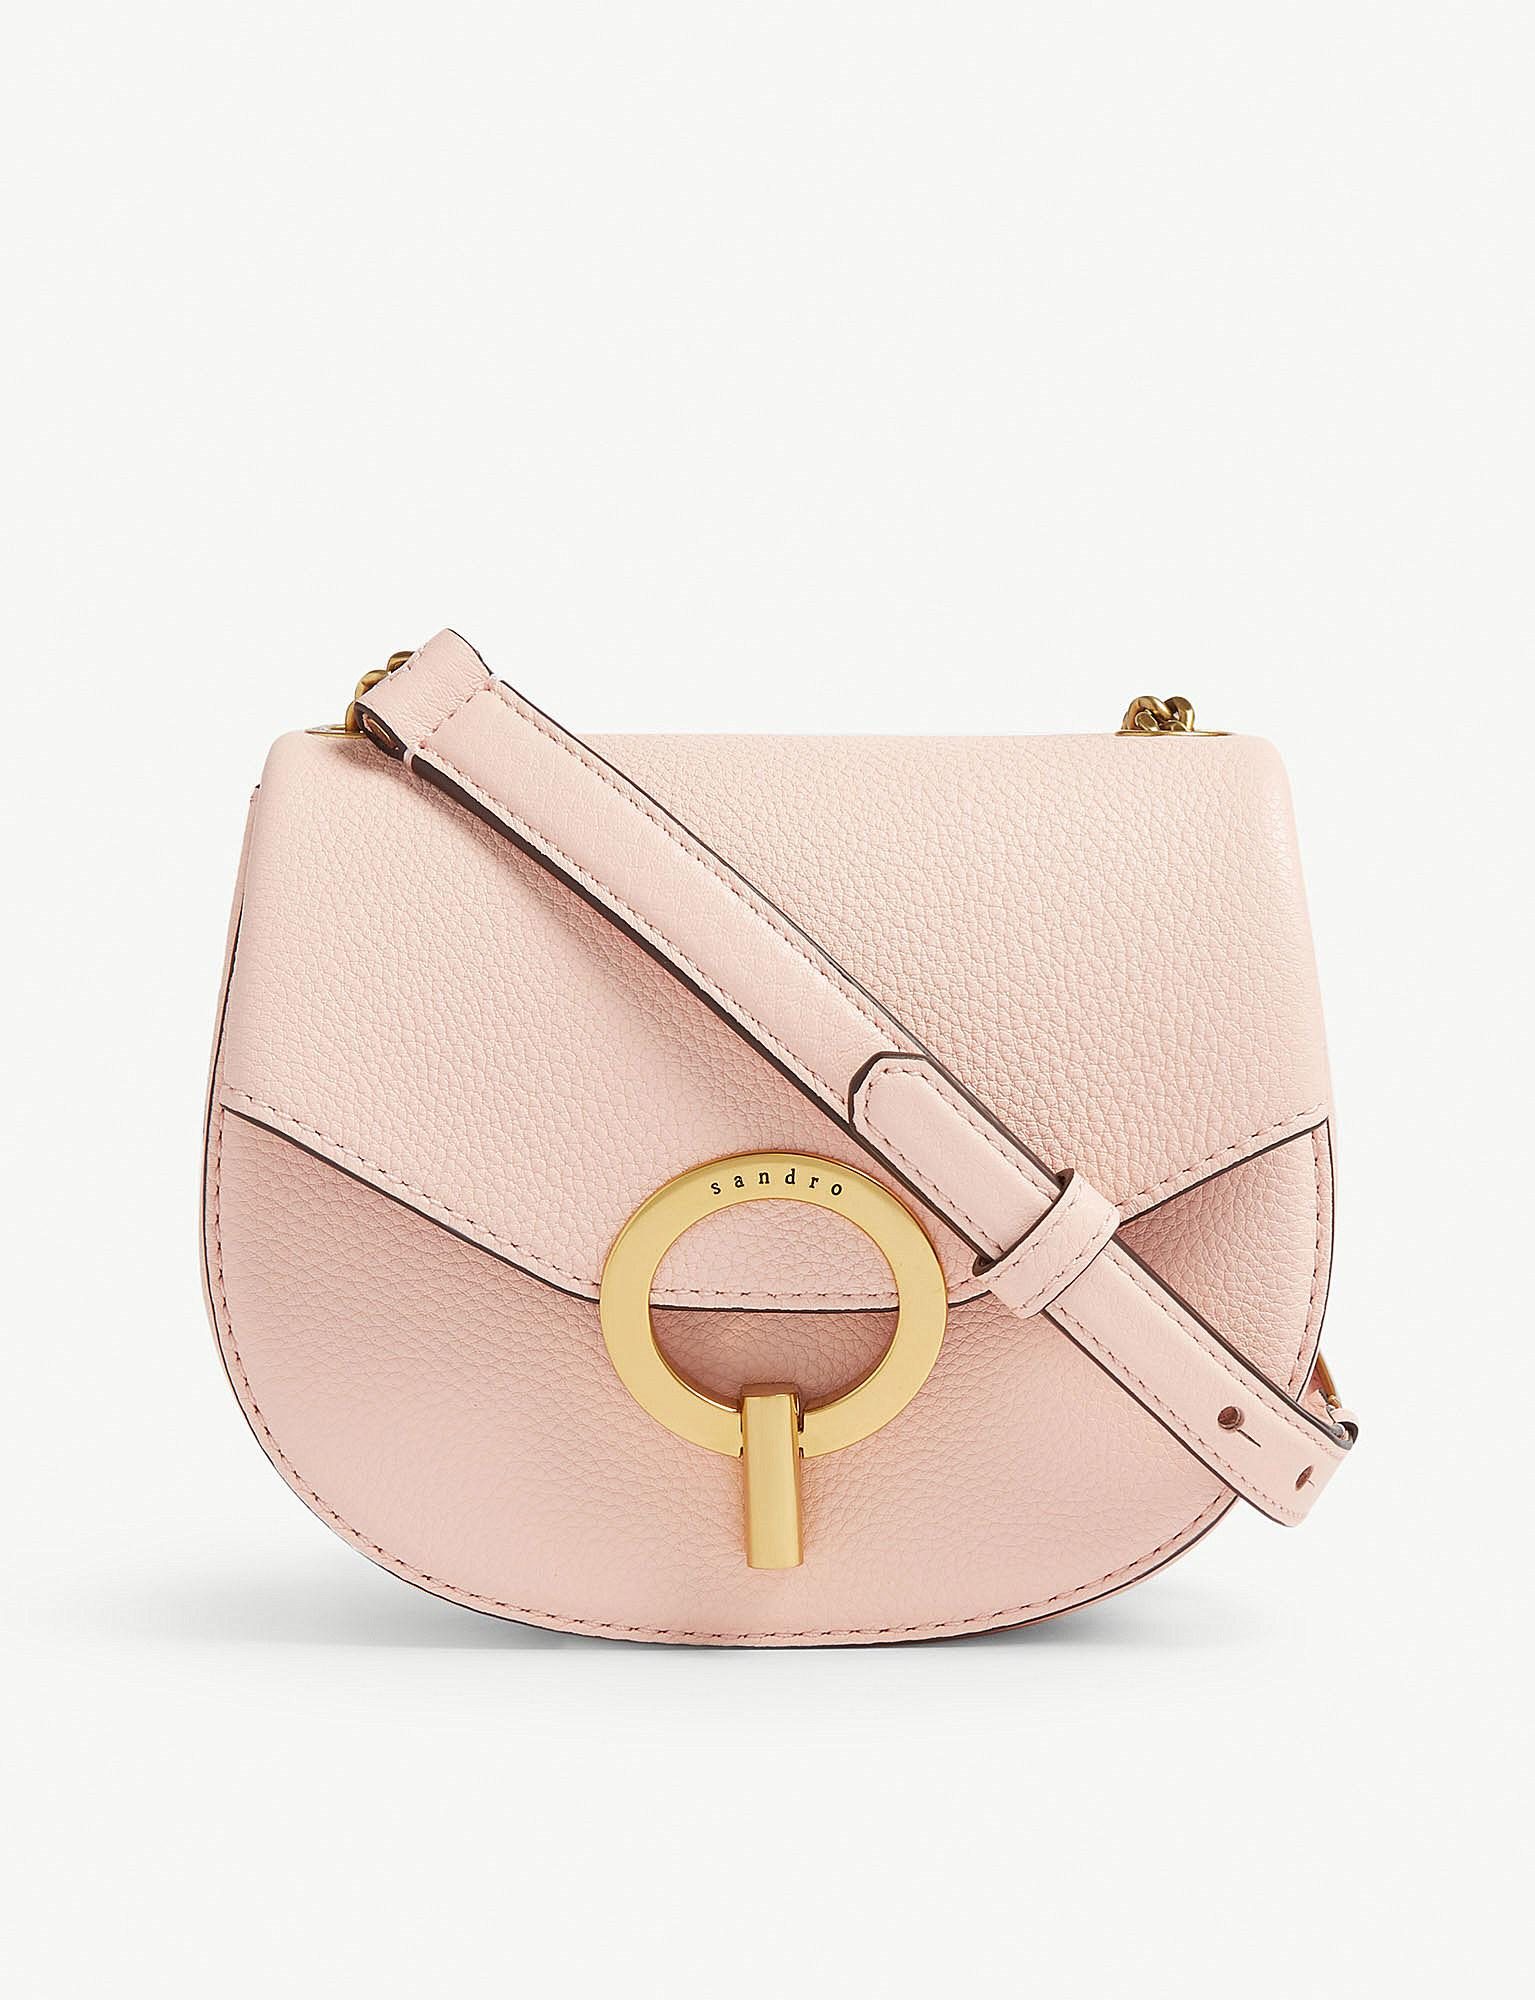 b6c5a11f2556 Lyst - Sandro Pepita Leather Shoulder Bag in Pink